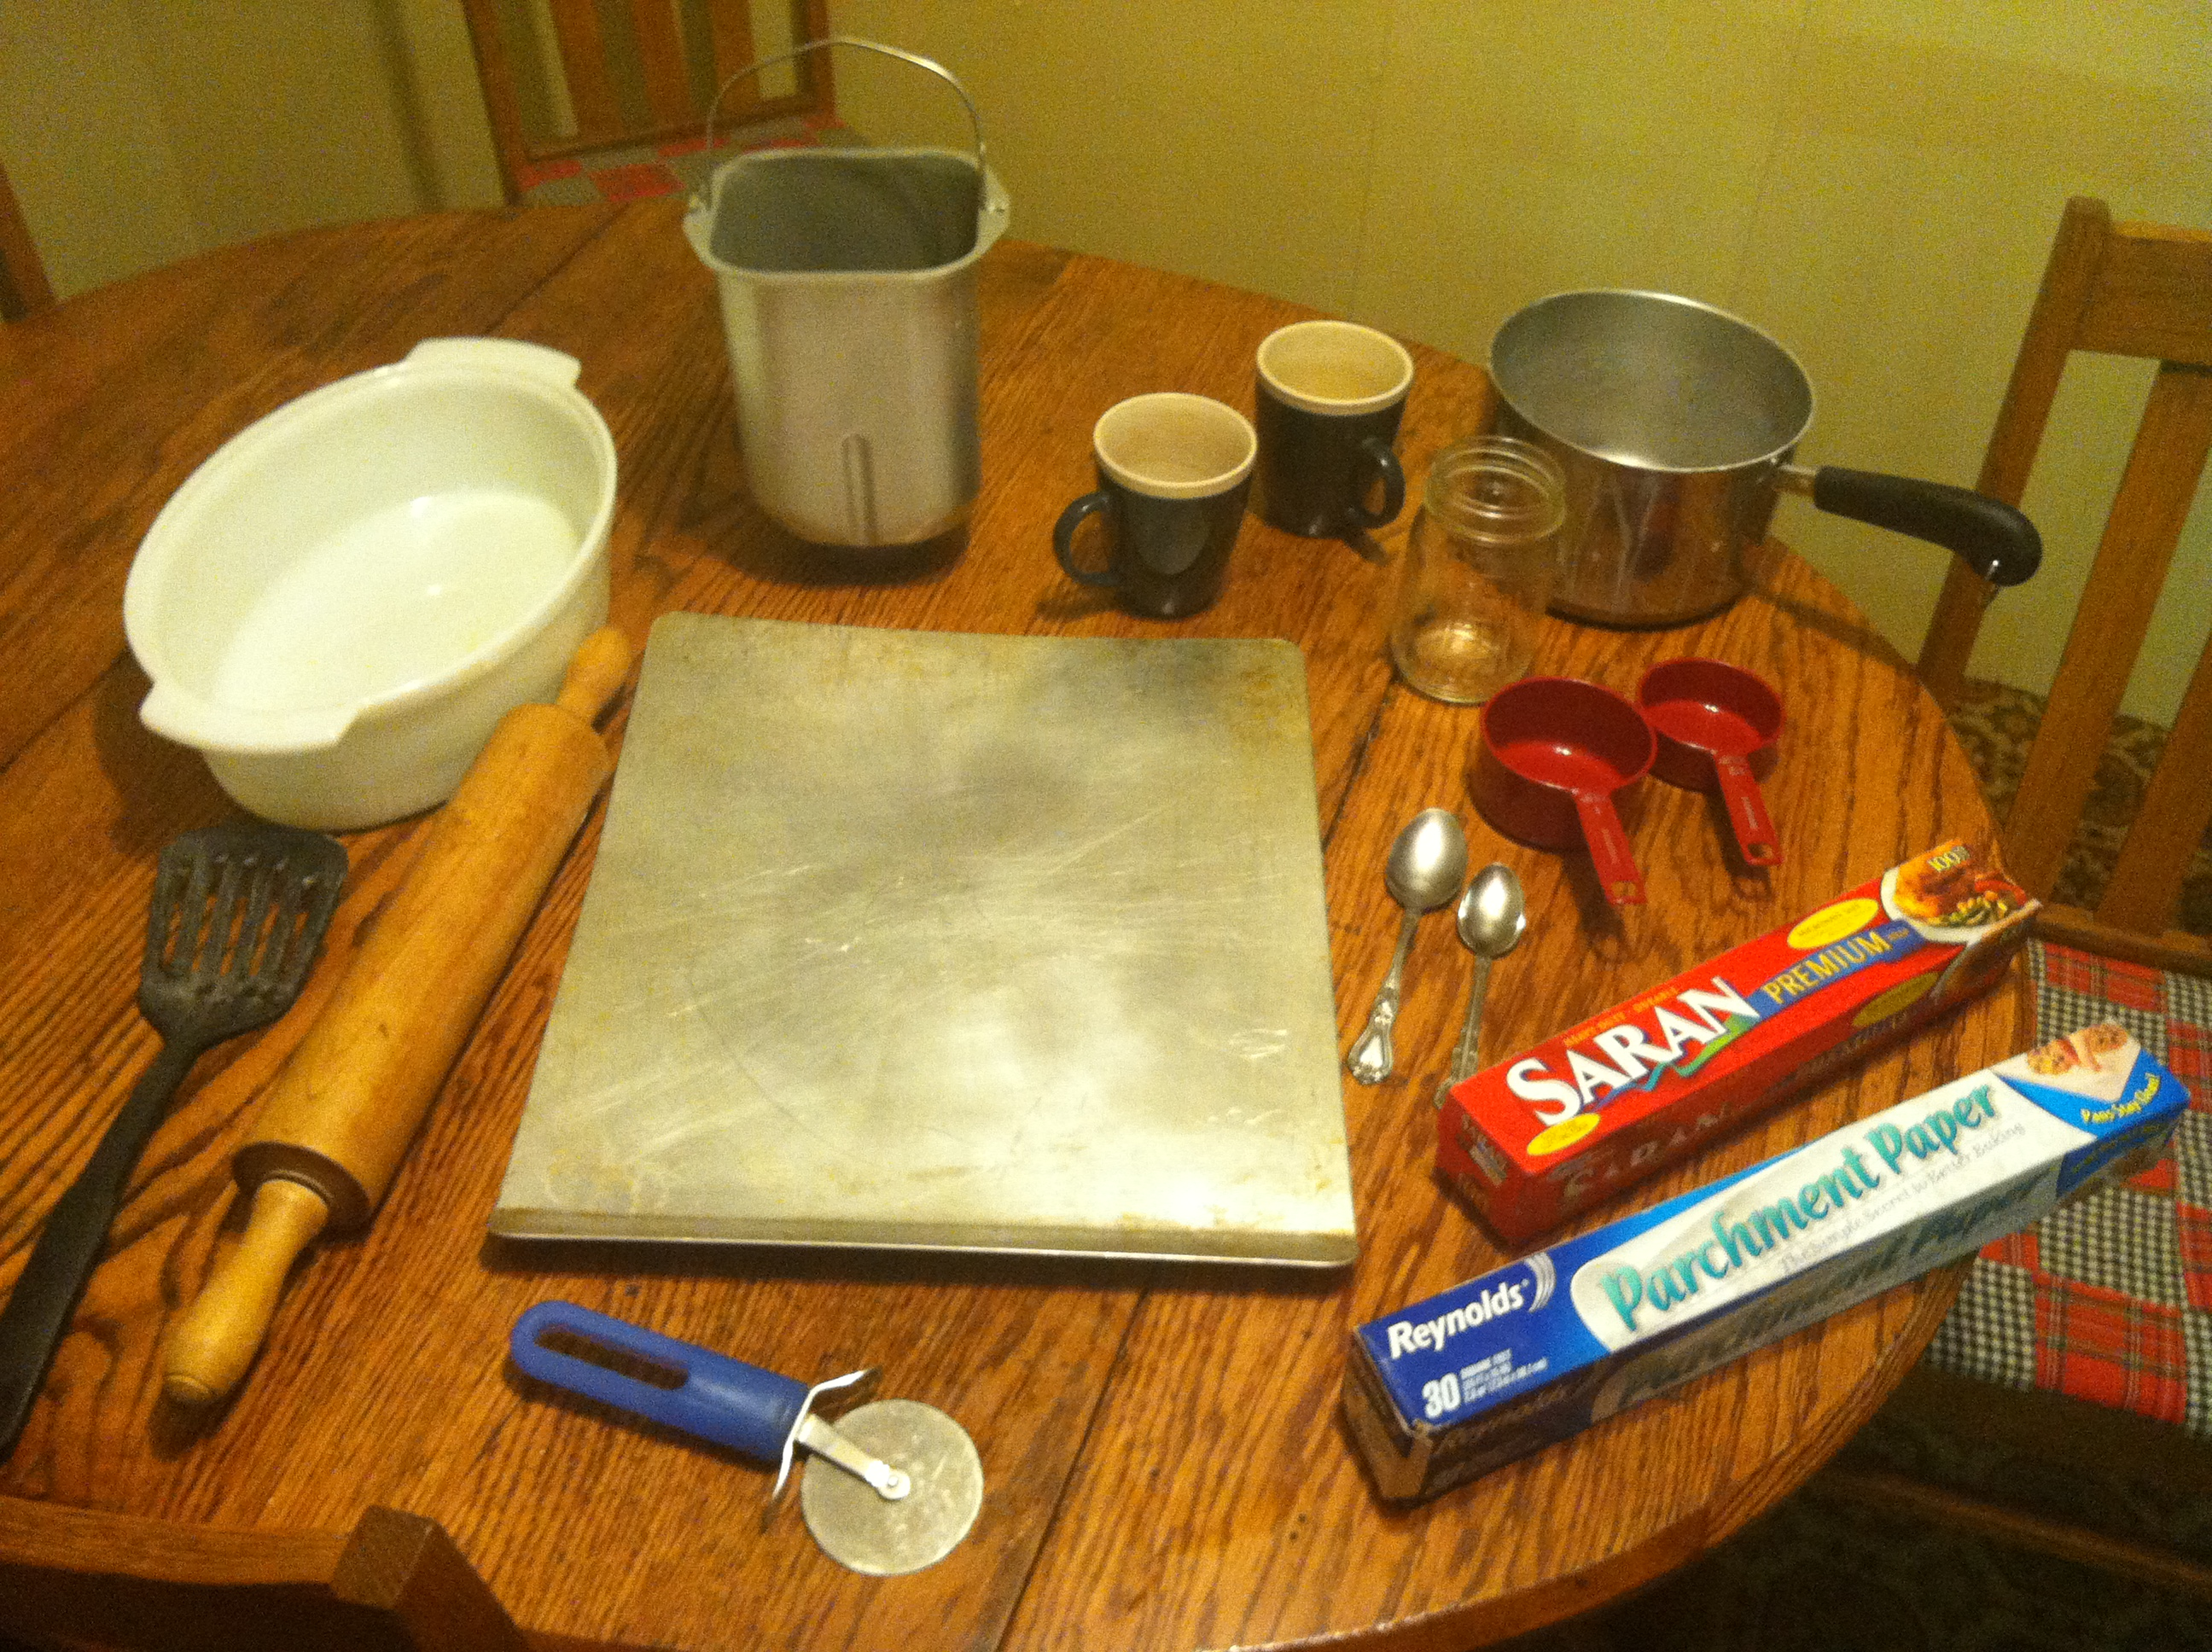 Picture of Gathering Ingredients and Utensils